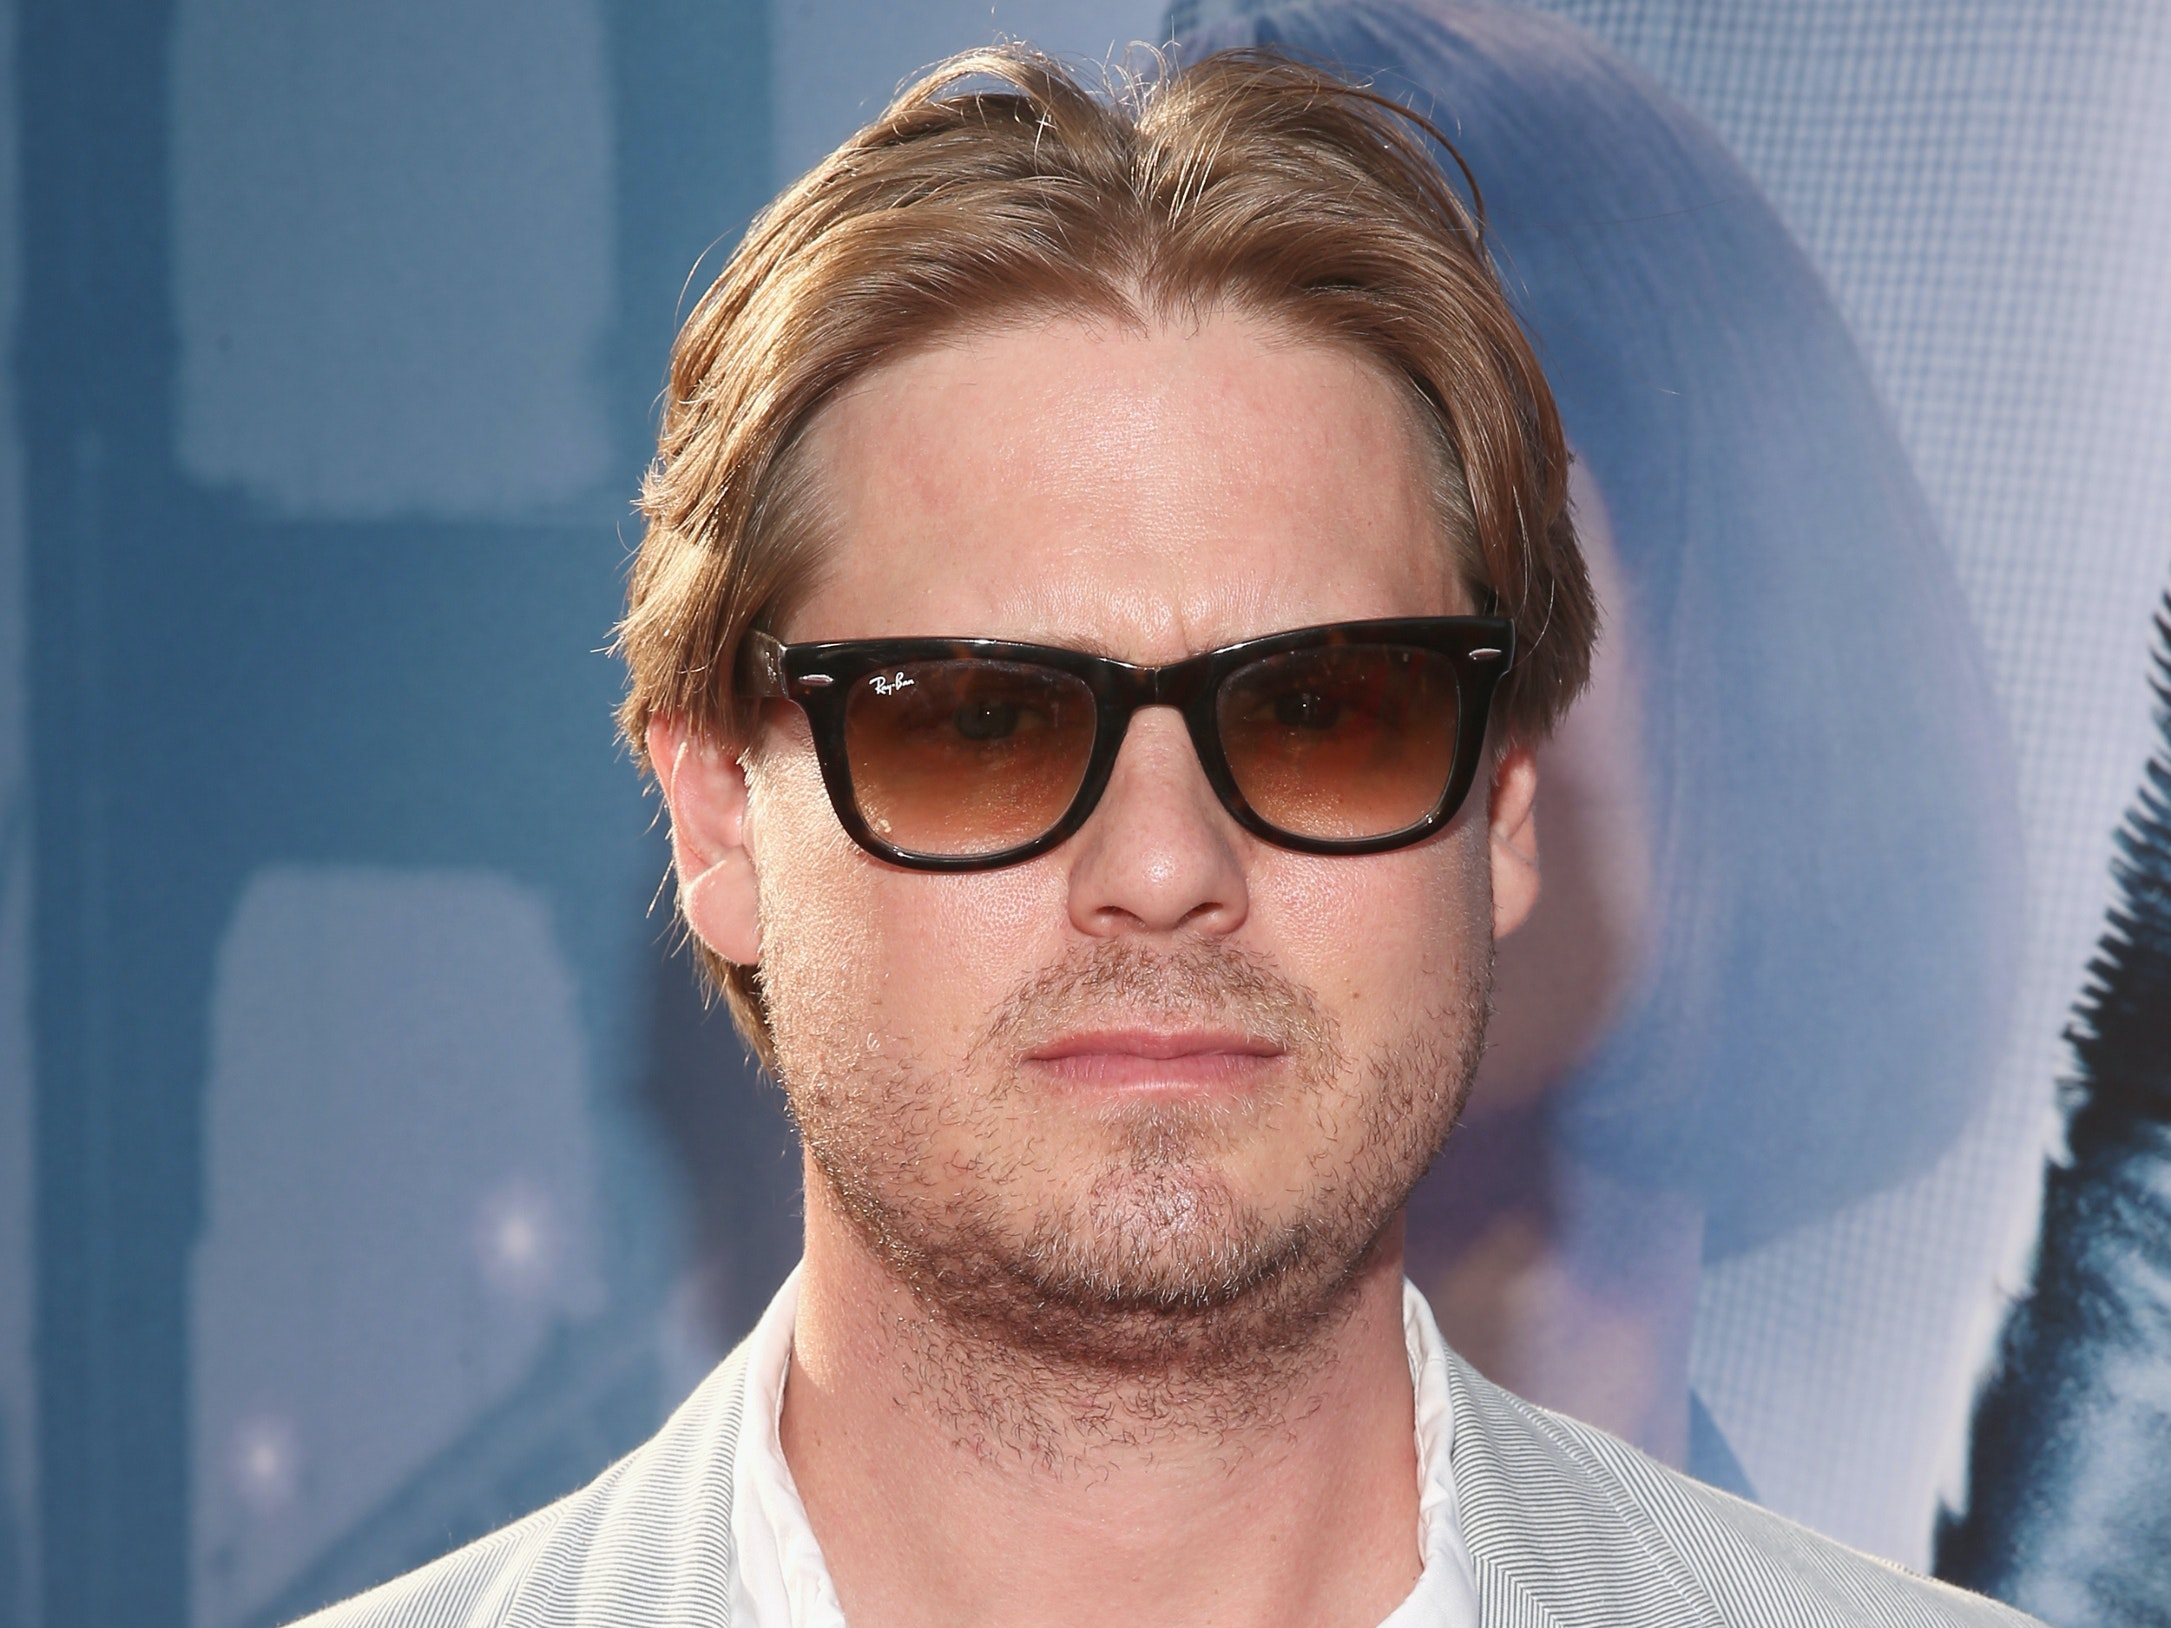 Tim Heidecker's New Album 'In Glendale' Will Be A Sincere Love Letter to 1970s Pop